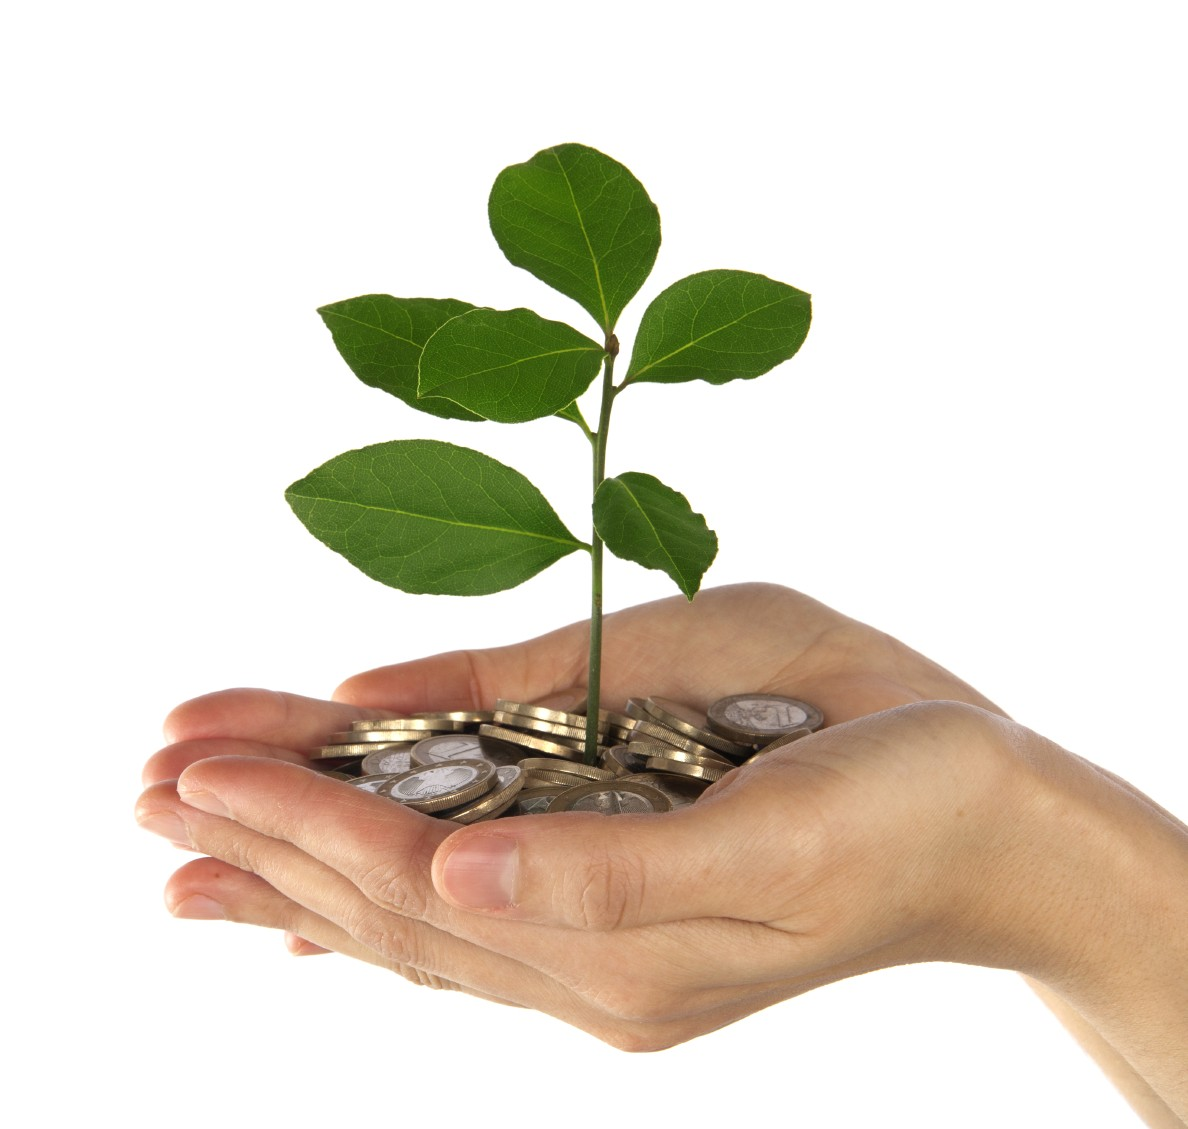 Hands with Coins & Plant